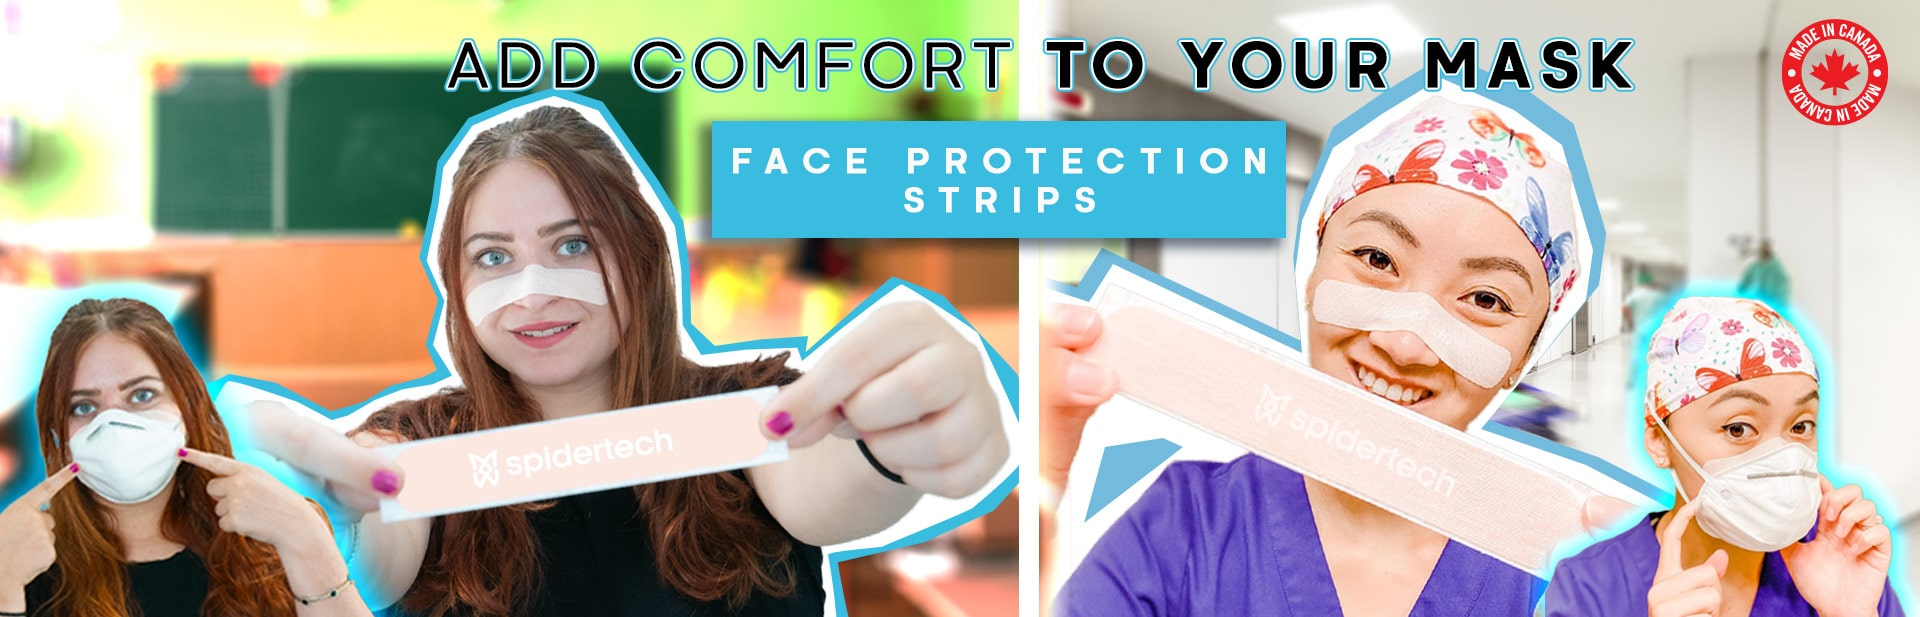 face protection strips